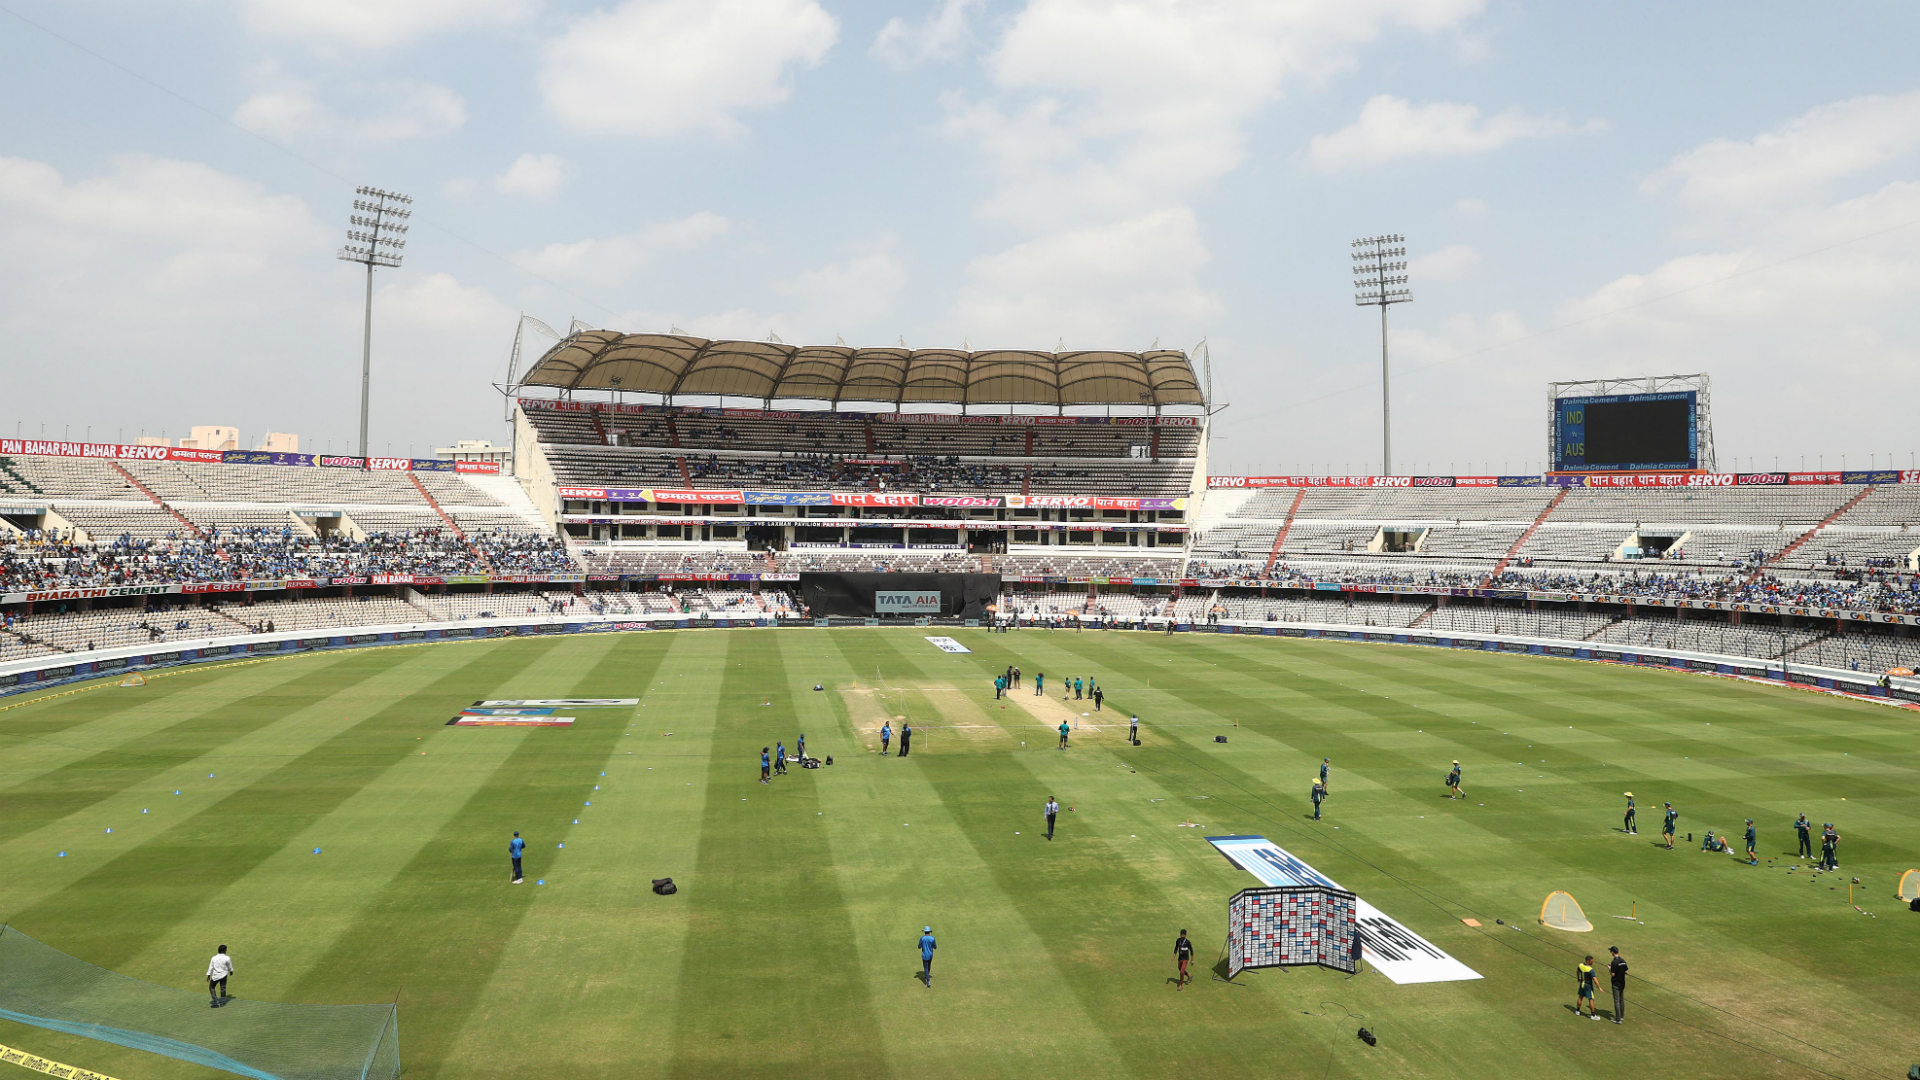 Coronavirus: India v South Africa ODI series to be rescheduled